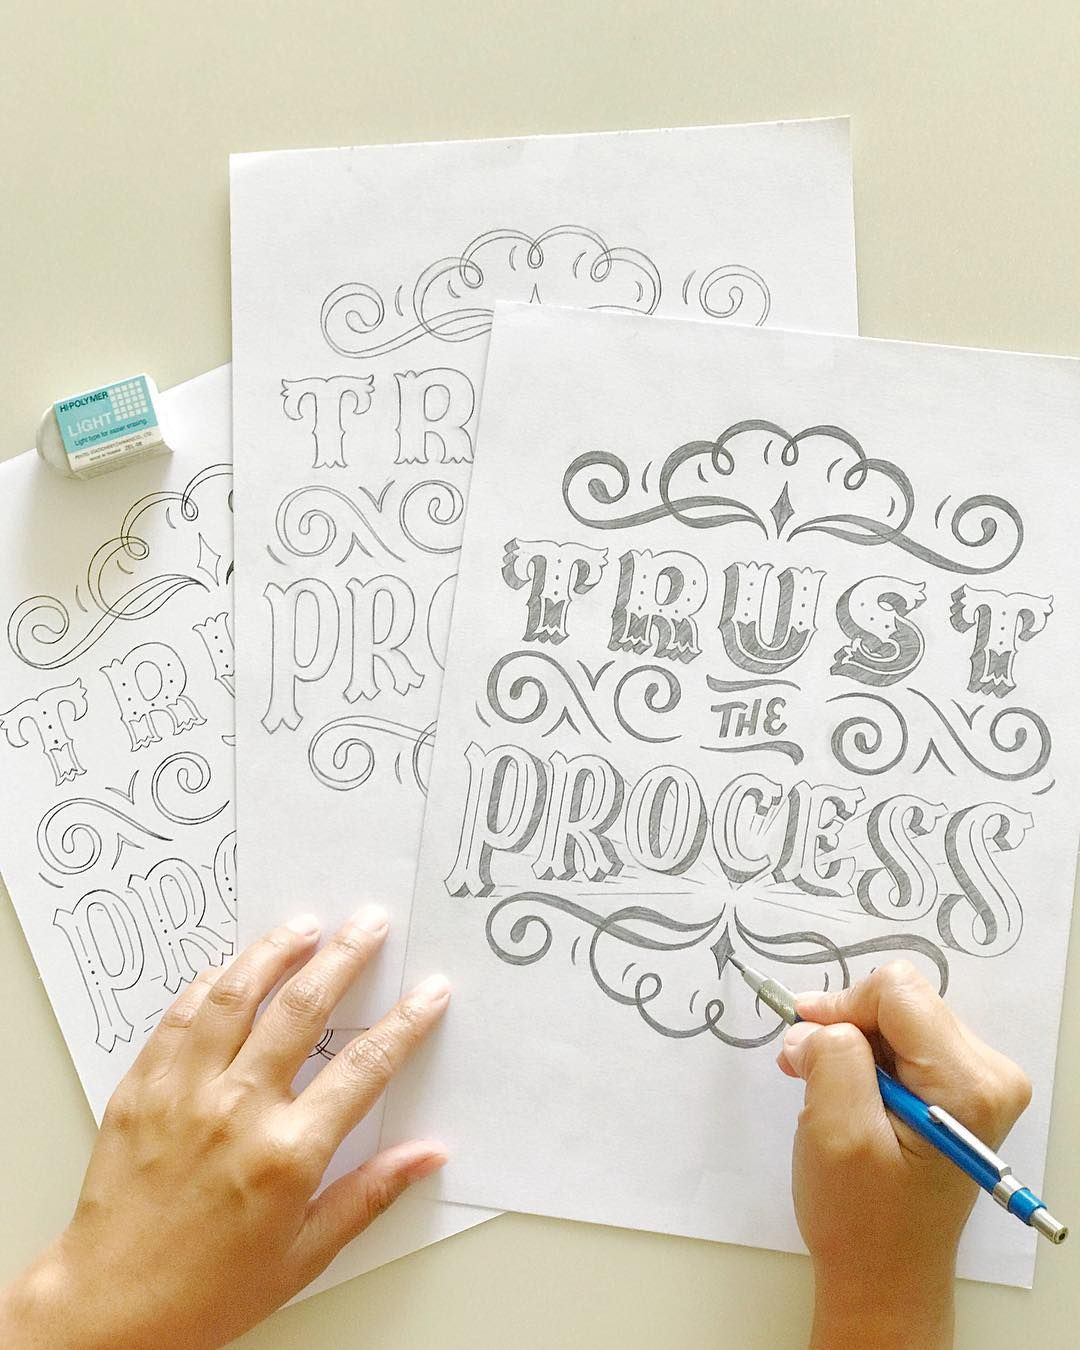 Hand lettering lettering pencil sketch hand lettering sketch hand lettering lettering pencil sketch hand lettering sketch by mye de leon altavistaventures Image collections